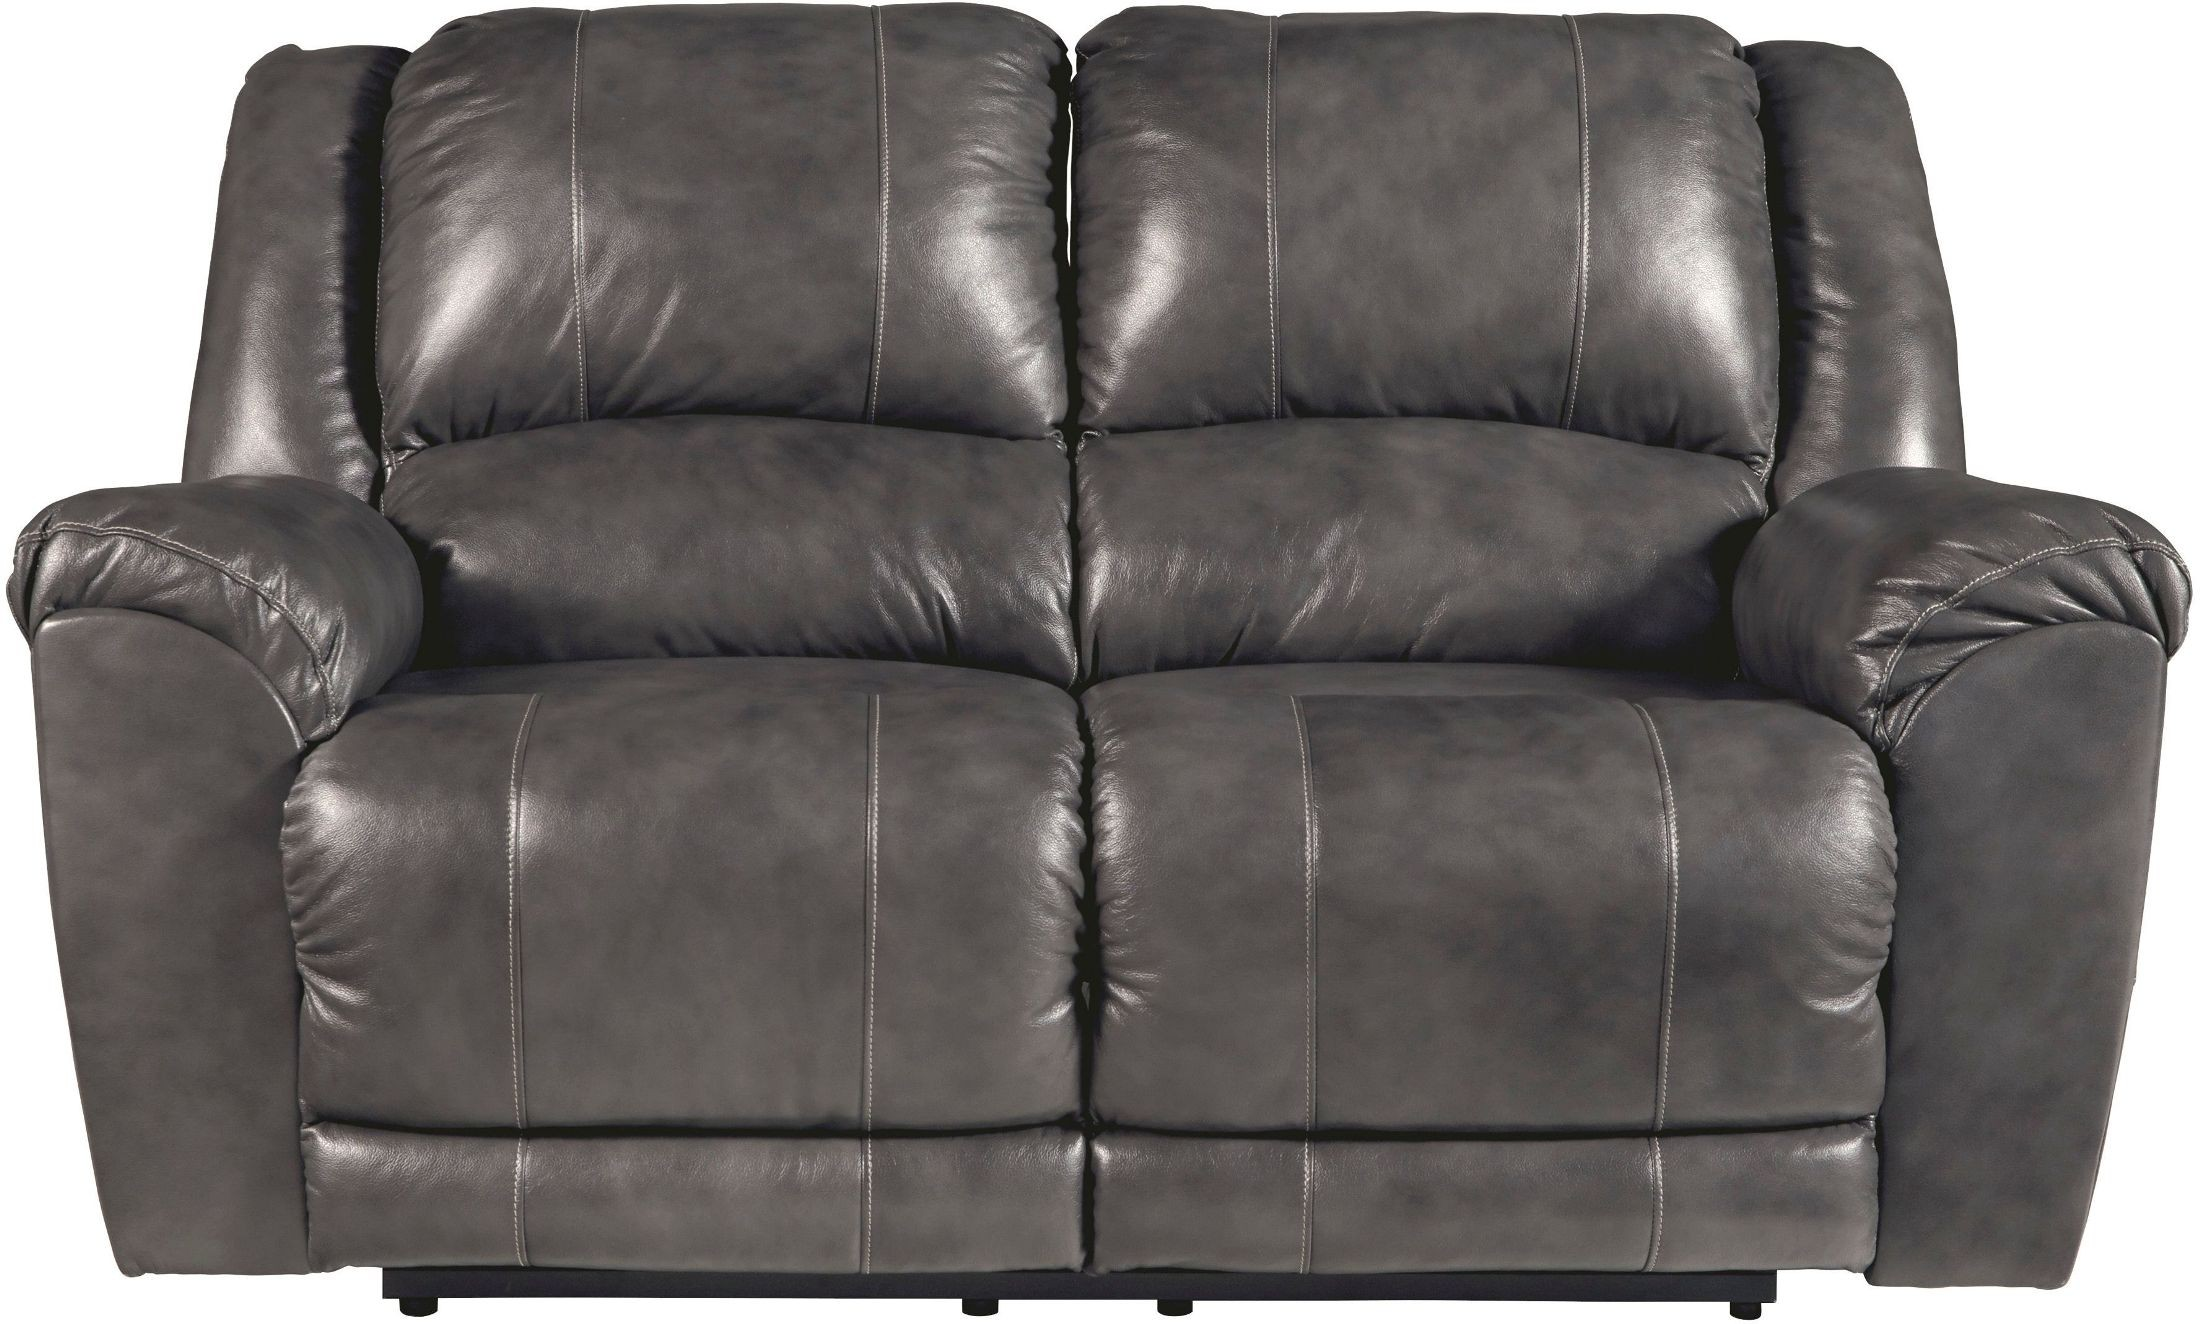 Persiphone Charcoal Power Reclining Loveseat From Ashley Coleman Furniture